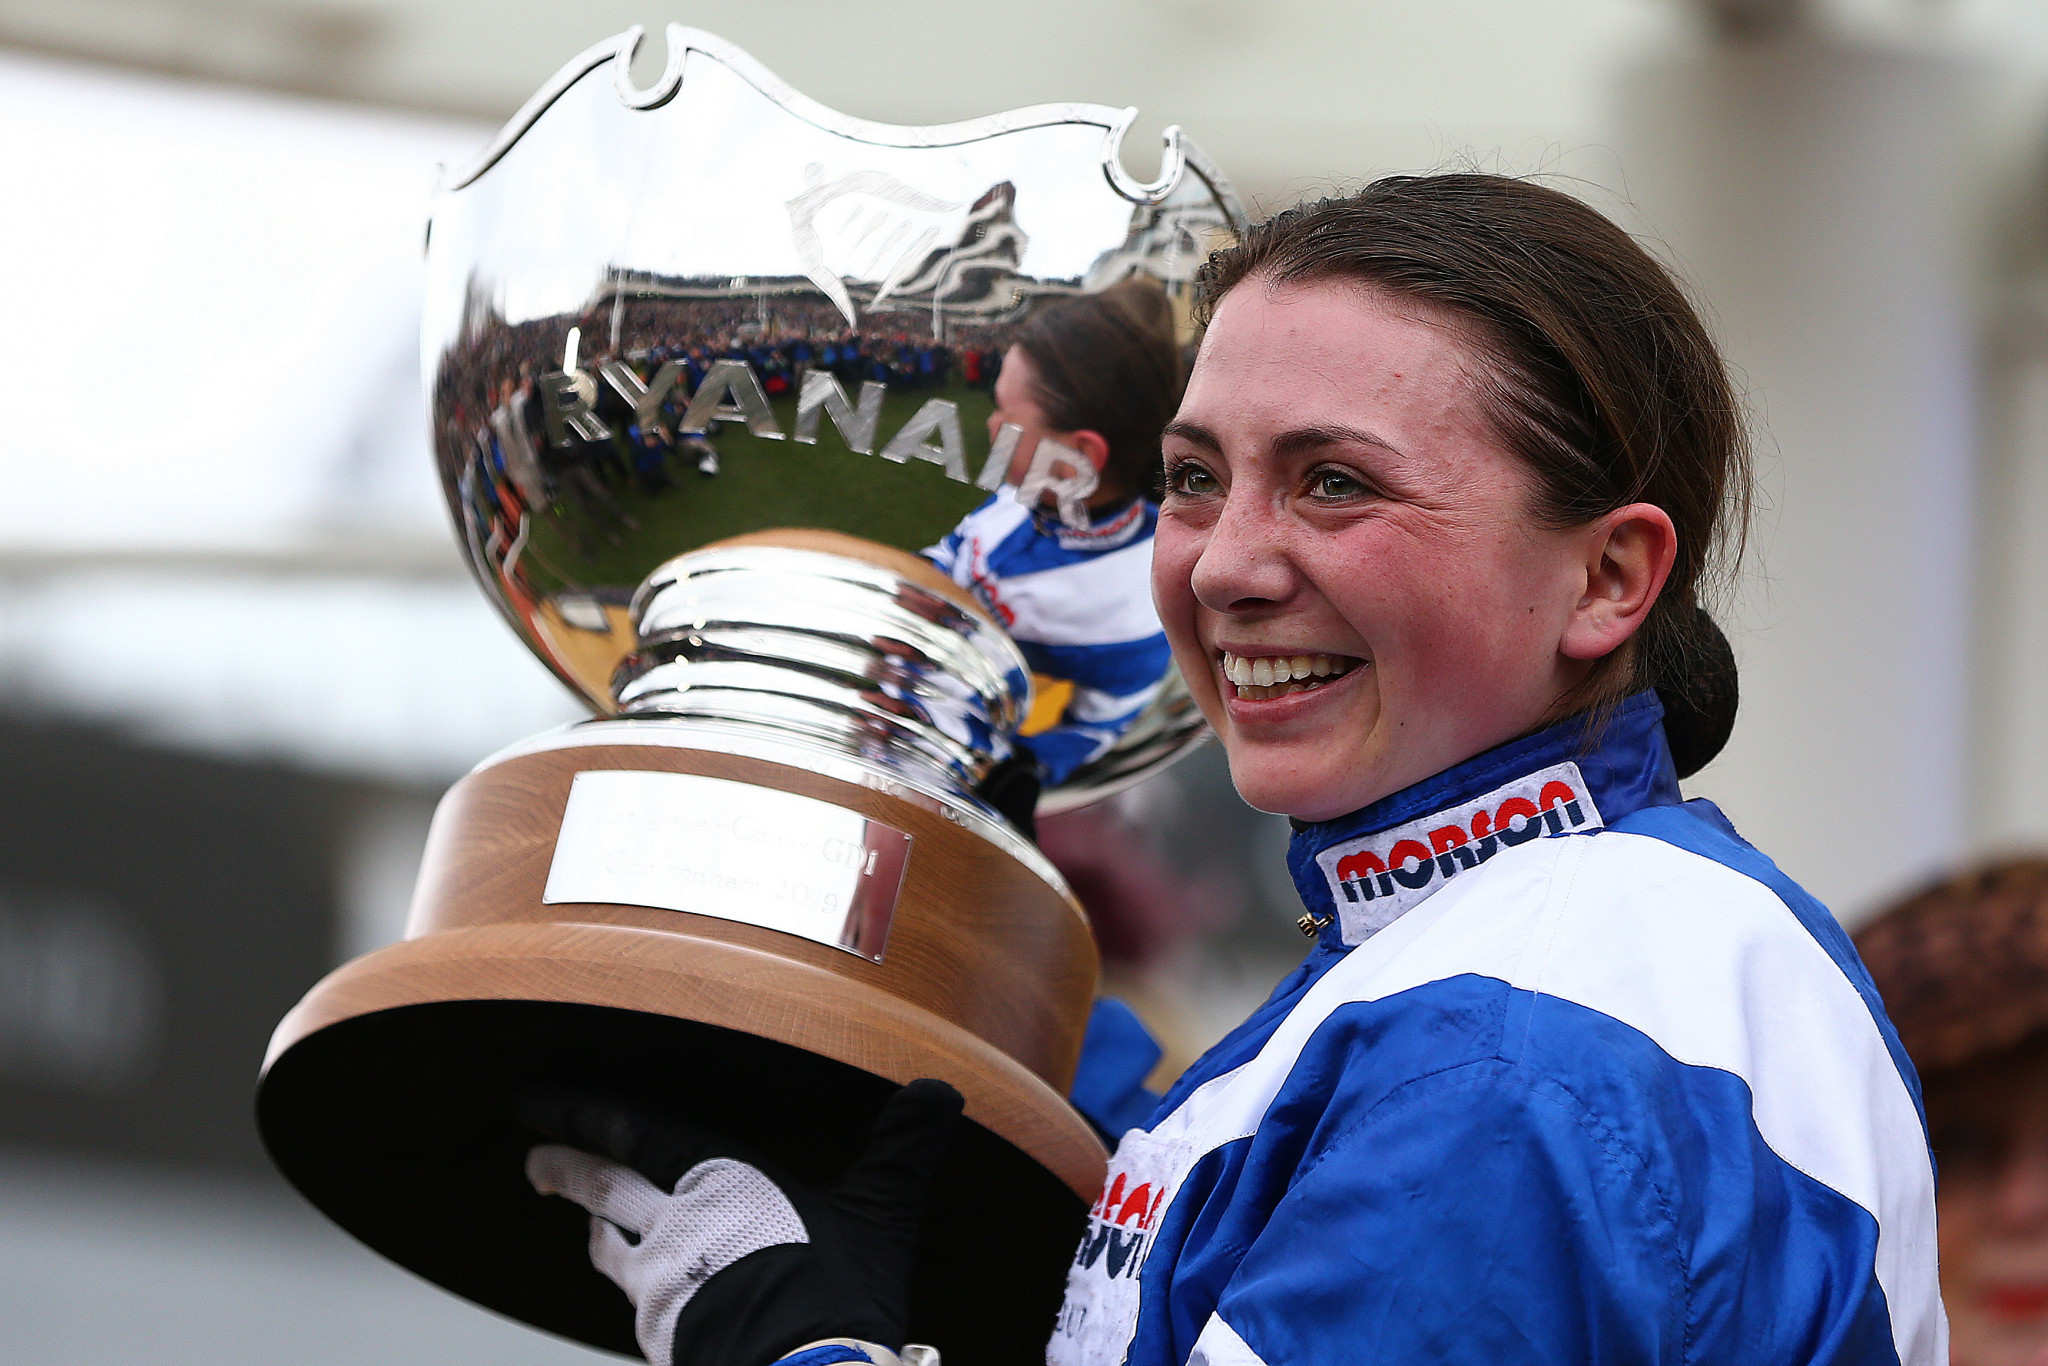 Jockey Bryony Frost poses with the trophy after she rides Frodon to victory during the Ryanair Chase ©Getty Images